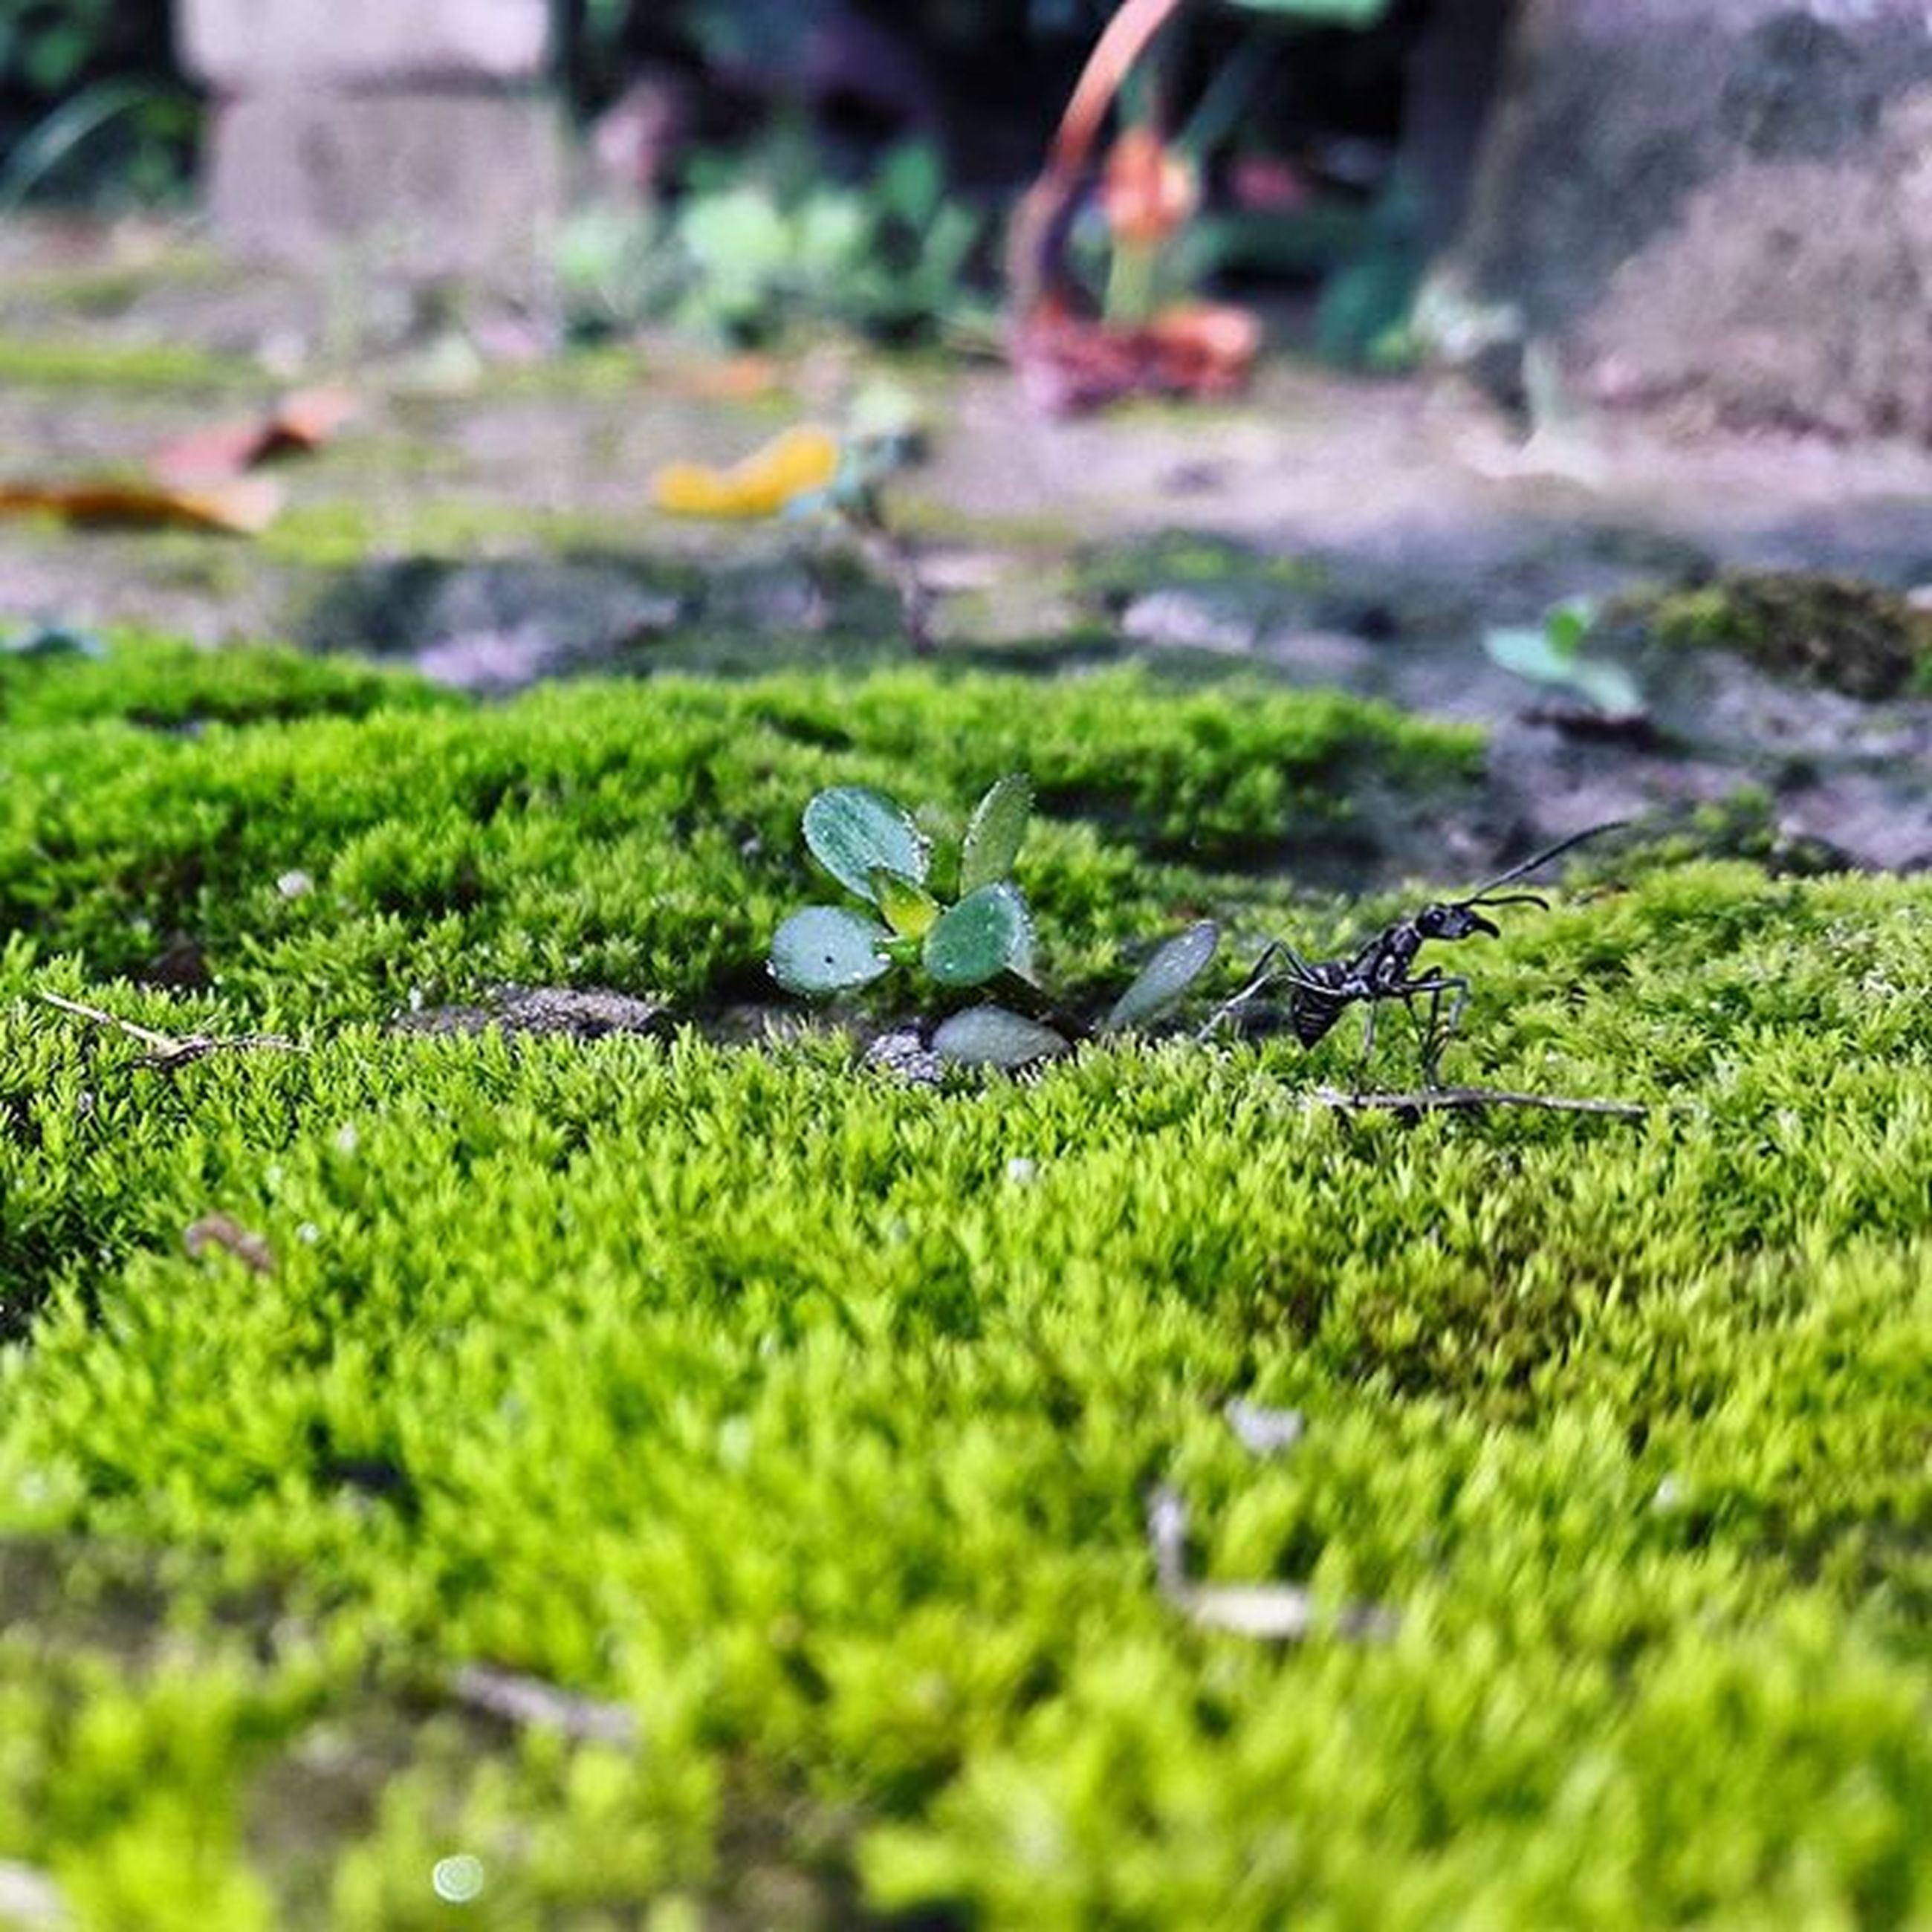 selective focus, grass, green color, growth, moss, surface level, plant, nature, close-up, focus on foreground, field, day, tranquility, beauty in nature, outdoors, leaf, rock - object, no people, green, focus on background